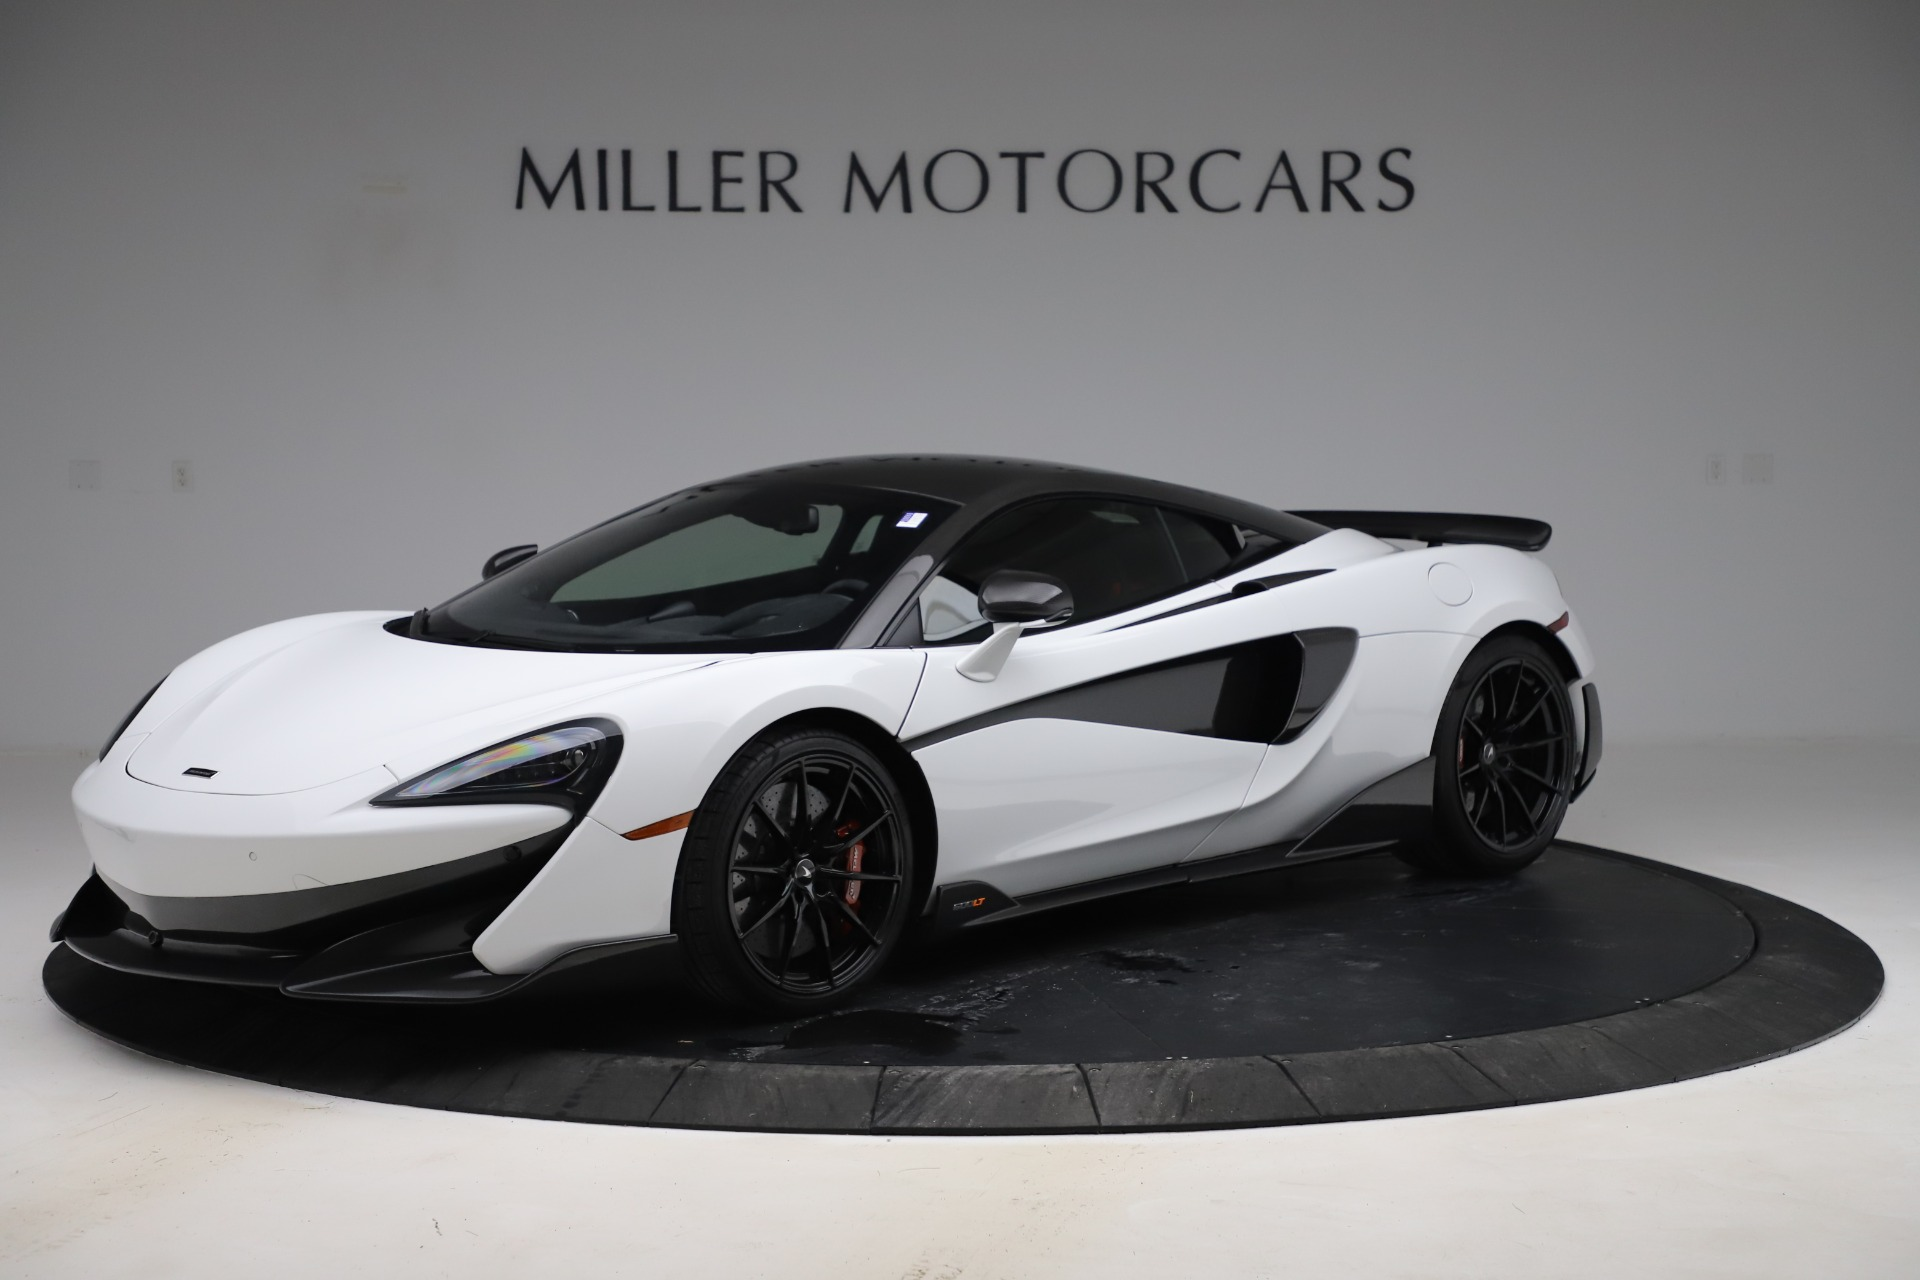 Used 2019 McLaren 600LT Coupe for sale $219,900 at Rolls-Royce Motor Cars Greenwich in Greenwich CT 06830 1